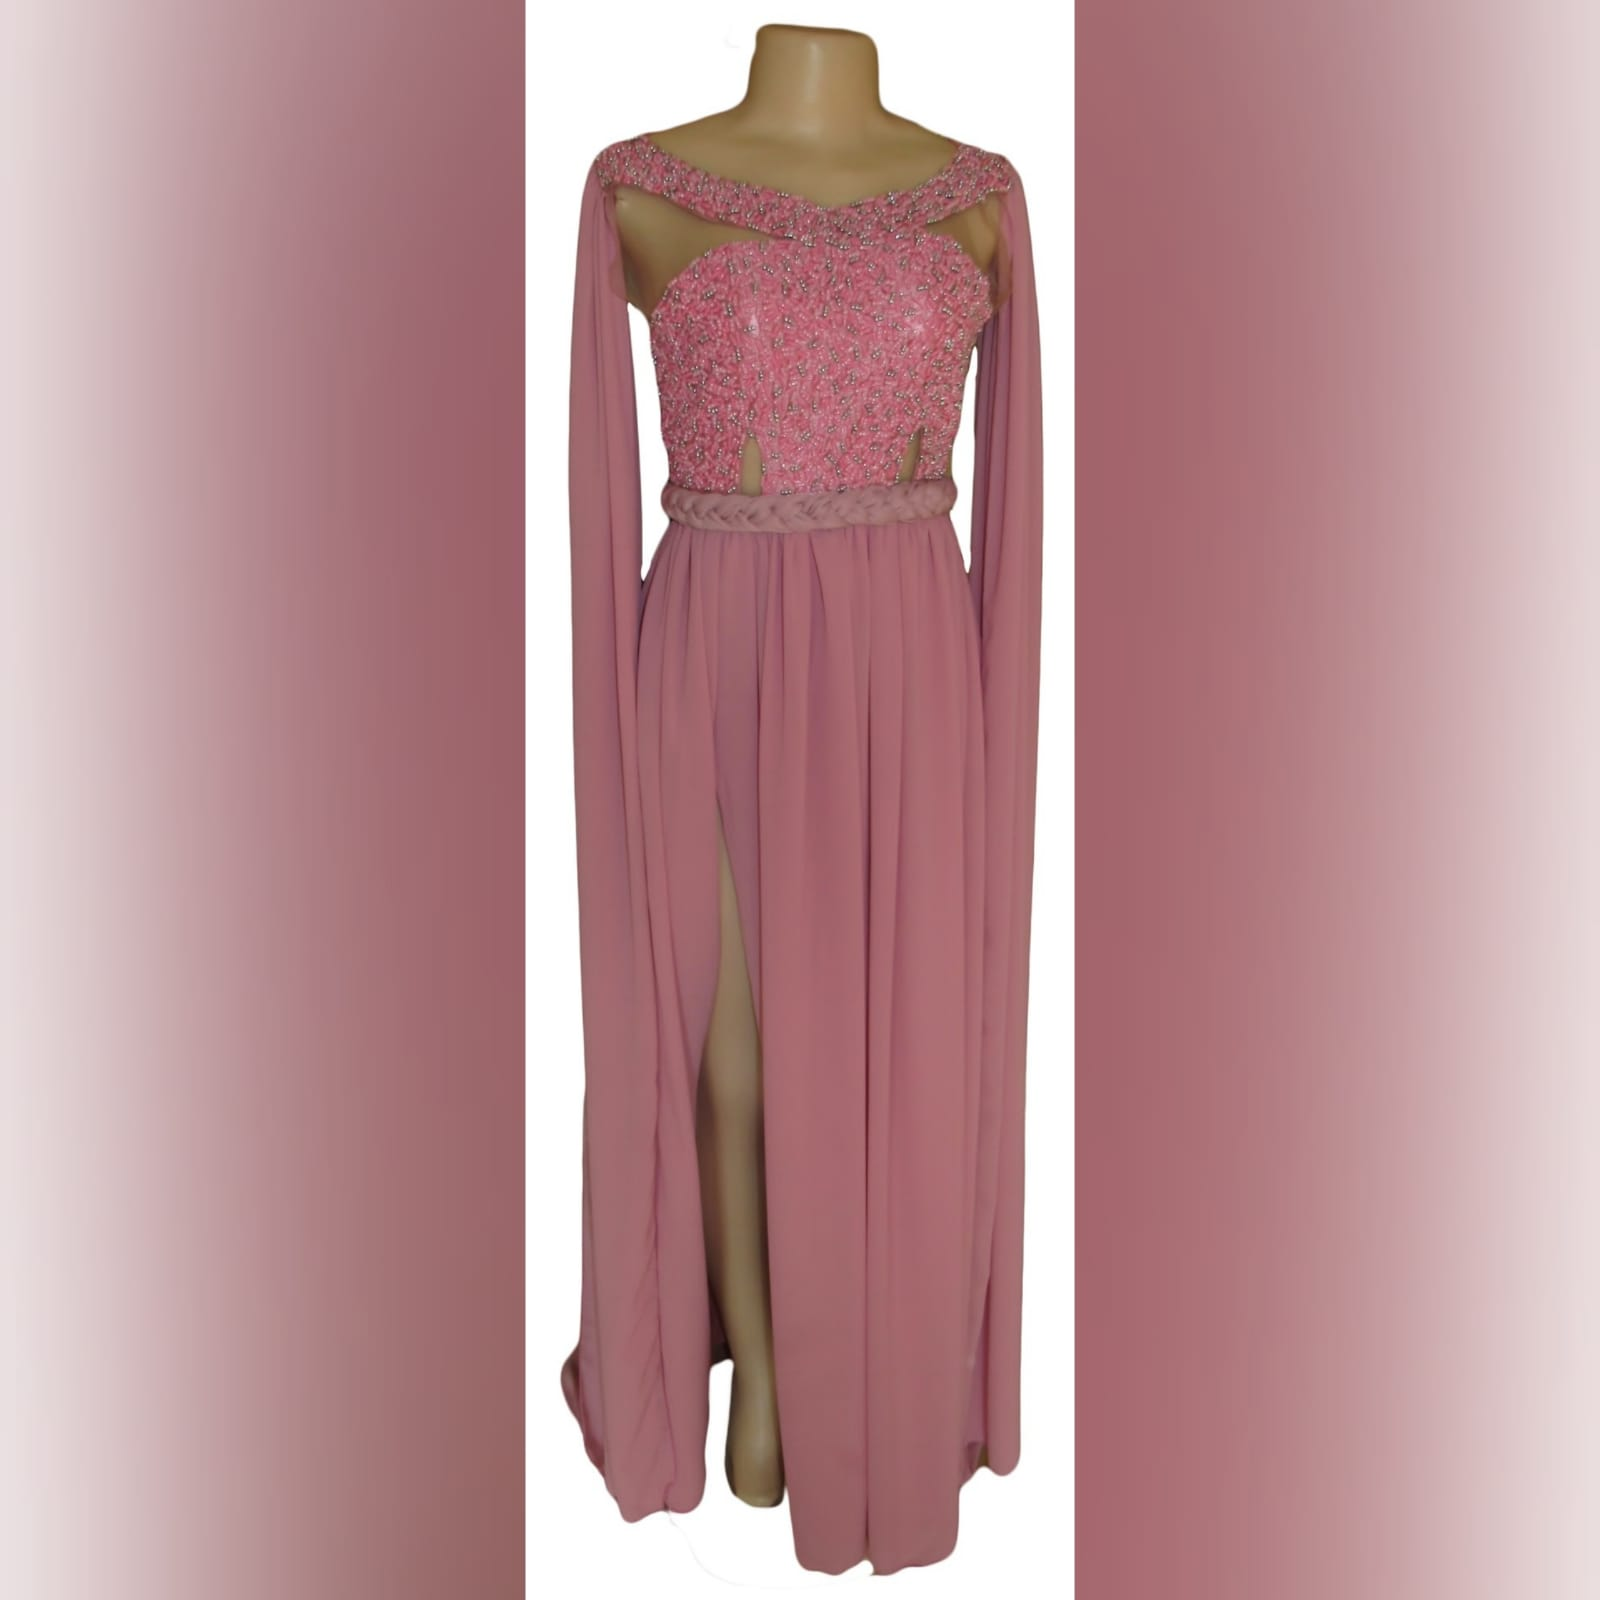 Dusty pink chiffon beaded prom dress 3 dusty pink chiffon beaded prom dress, bateau neckline effect with an illusion back, fully beaded bodice, plaited belt detail with a slit and a train. Shoulders with chiffon draping creating a goddess look.